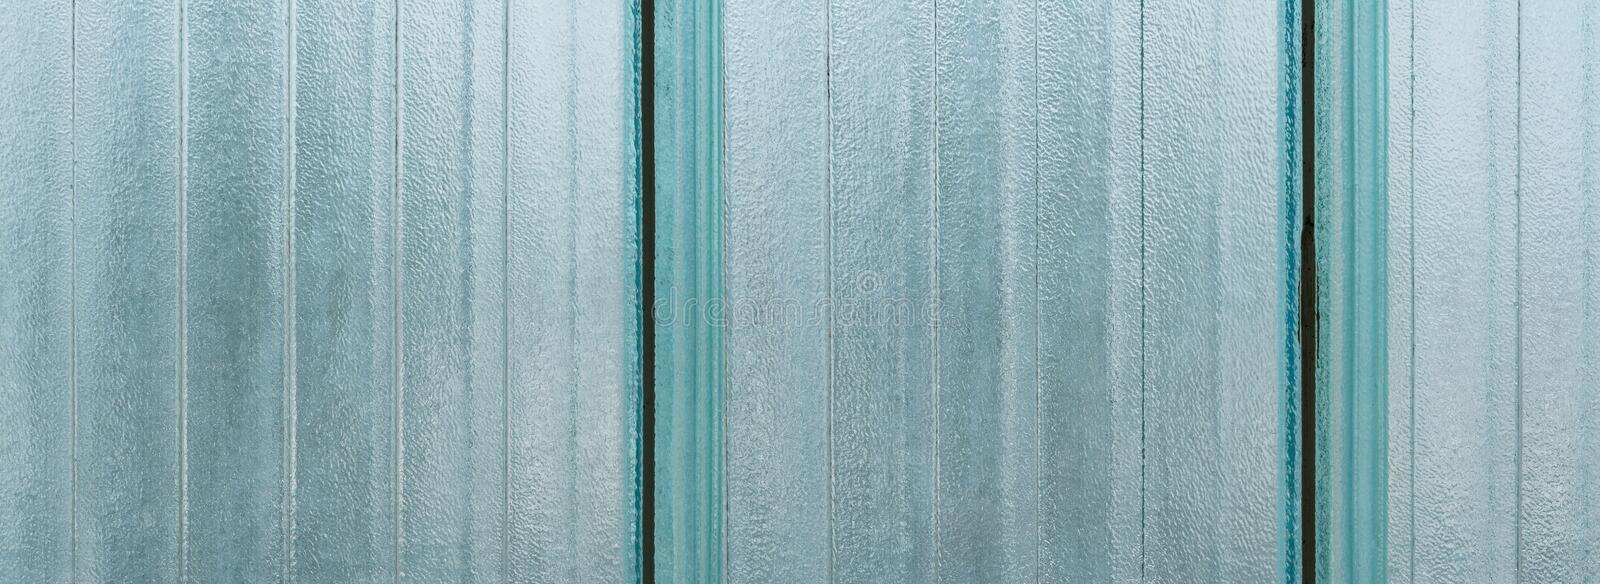 Opaque striped glass wall blocks. Architecture detail. Wide-angle background from vertical strips of big translucent bricks. Abstract blue grainy textured royalty free stock image